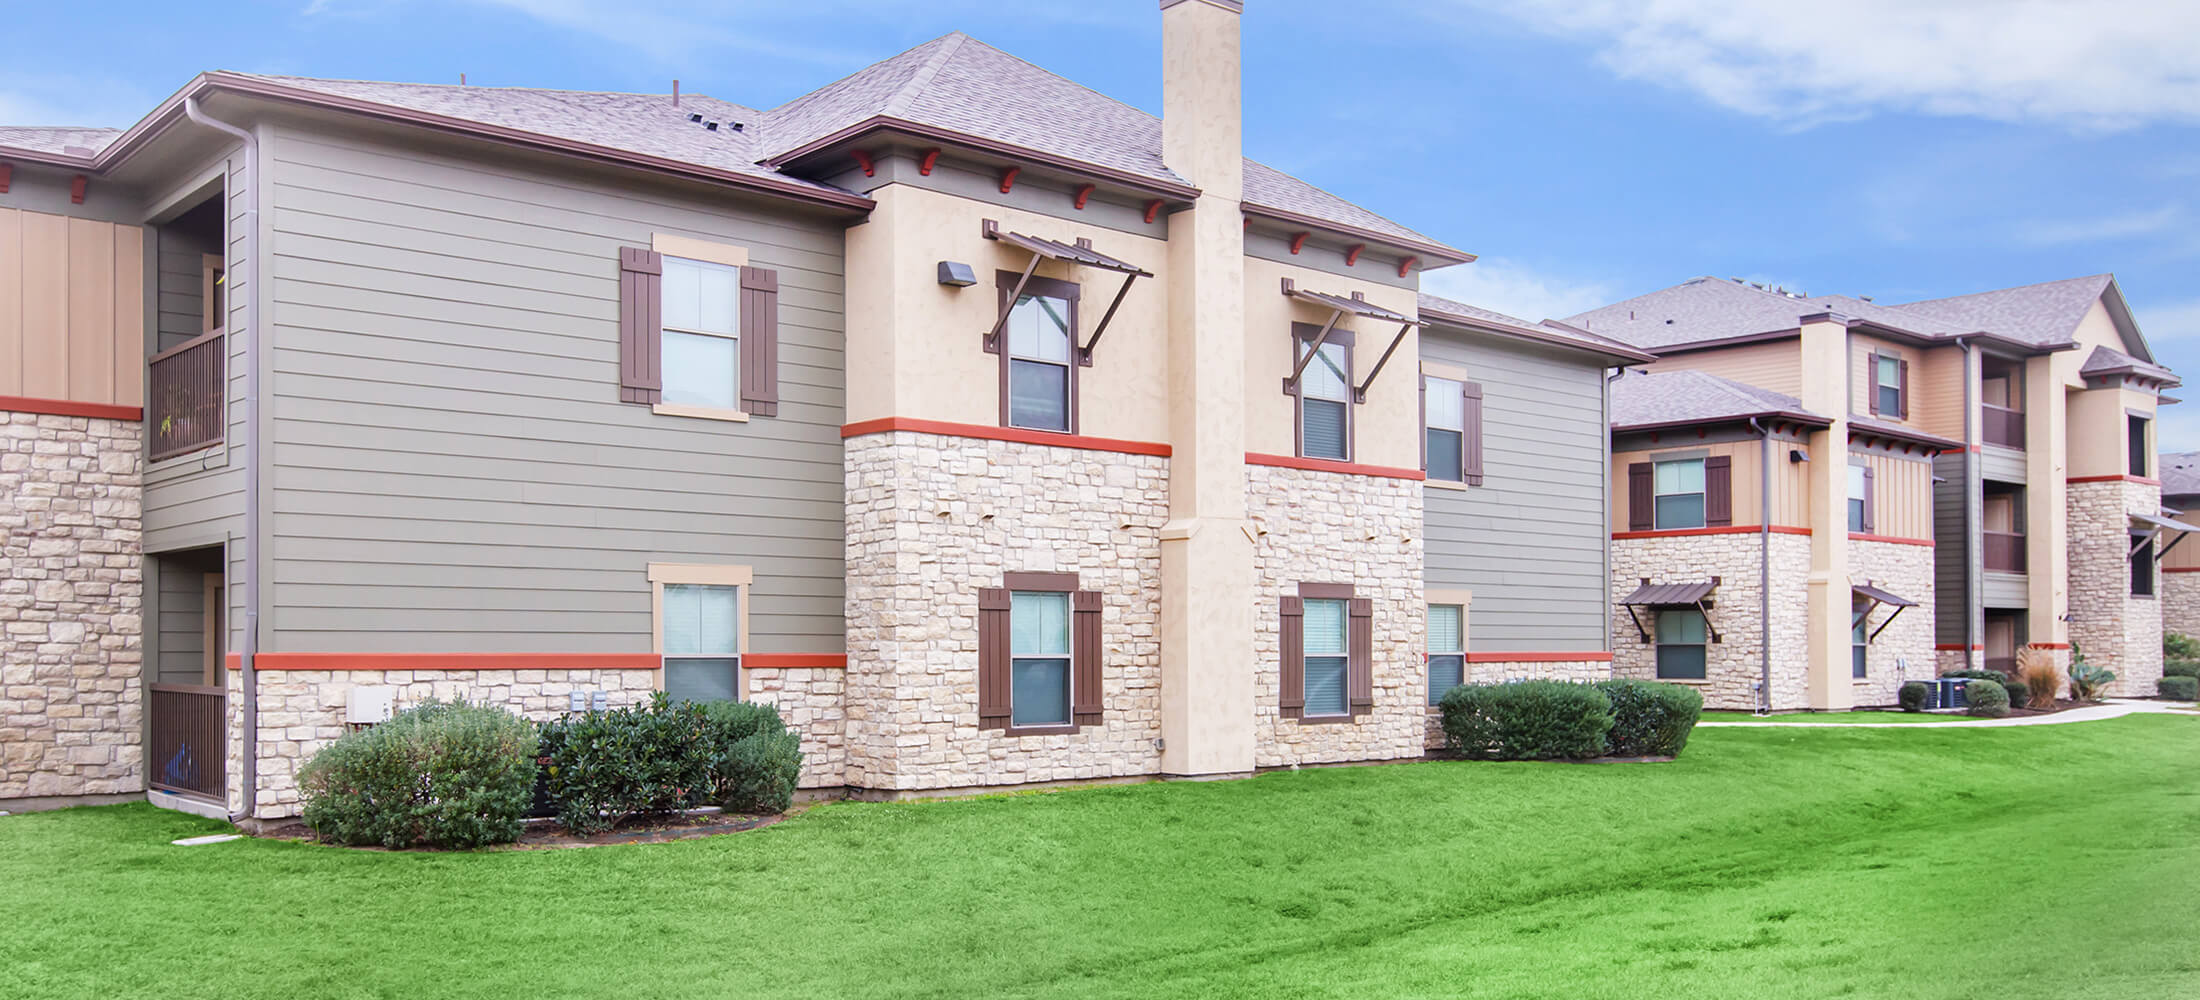 1 Bedroom Apartments In Laredo Tx 28 Images Flat Apartments For Rent In Laredo Iha 28368 1